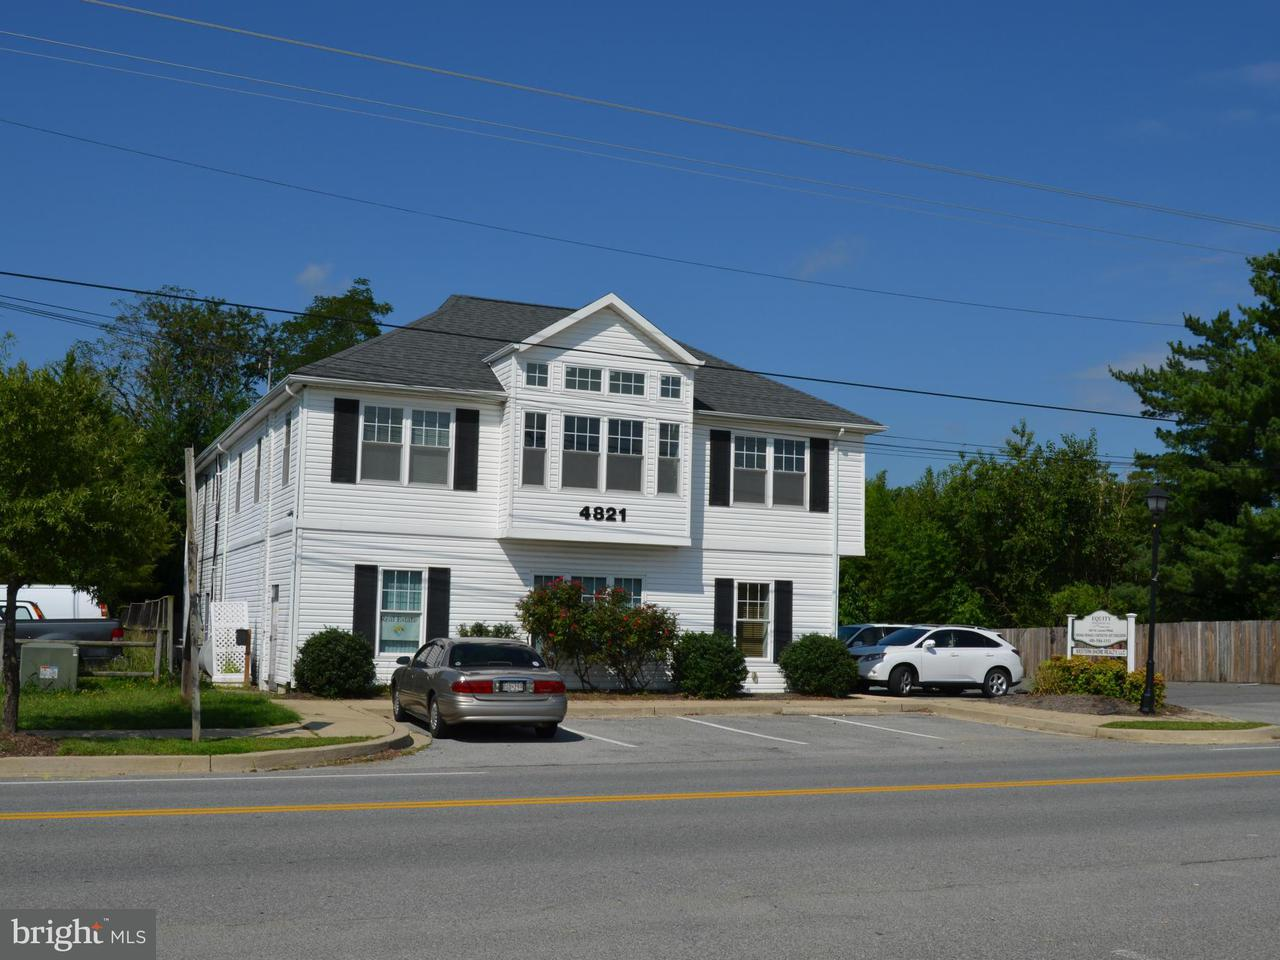 Other Residential for Rent at 4821 St Leonard Rd St. Leonard, Maryland 20685 United States